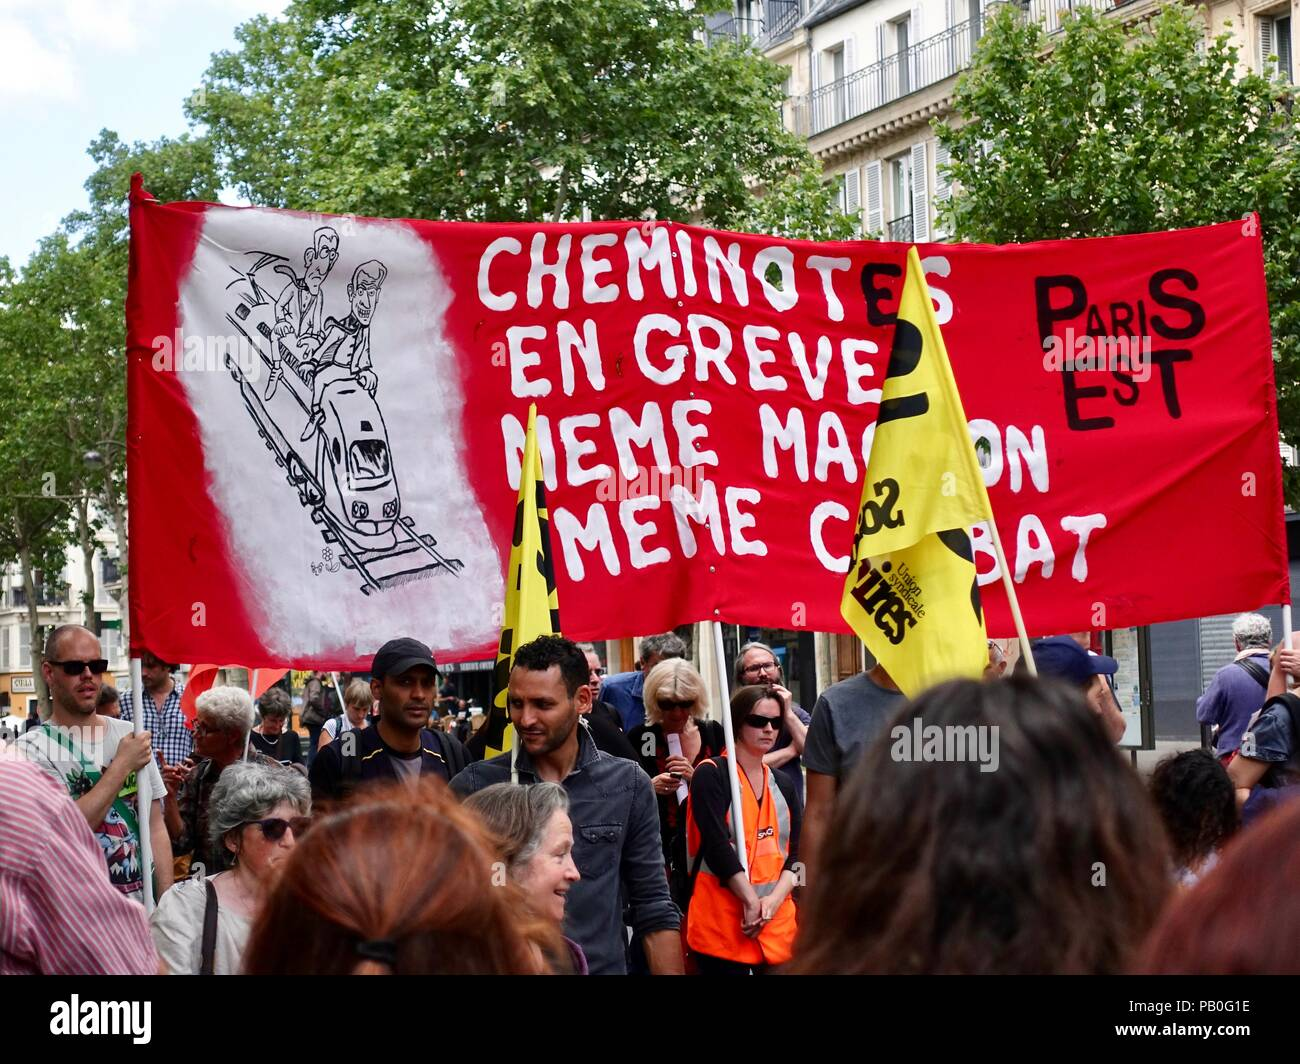 Striking train workers called 'cheminotes' carry a large red banner during a June demonstration against President Macron, Paris, France - Stock Image